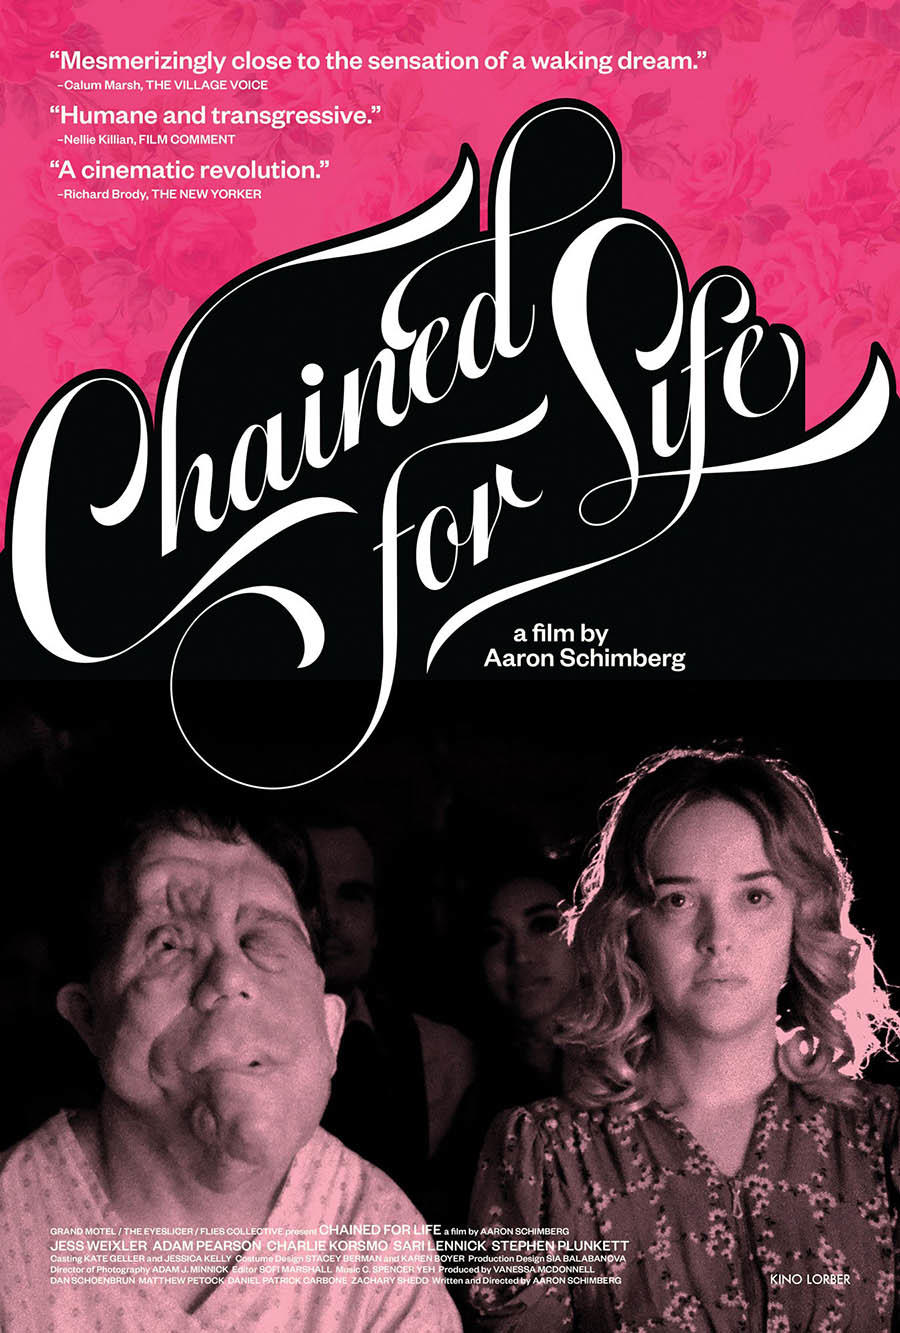 Chained for Life poster art